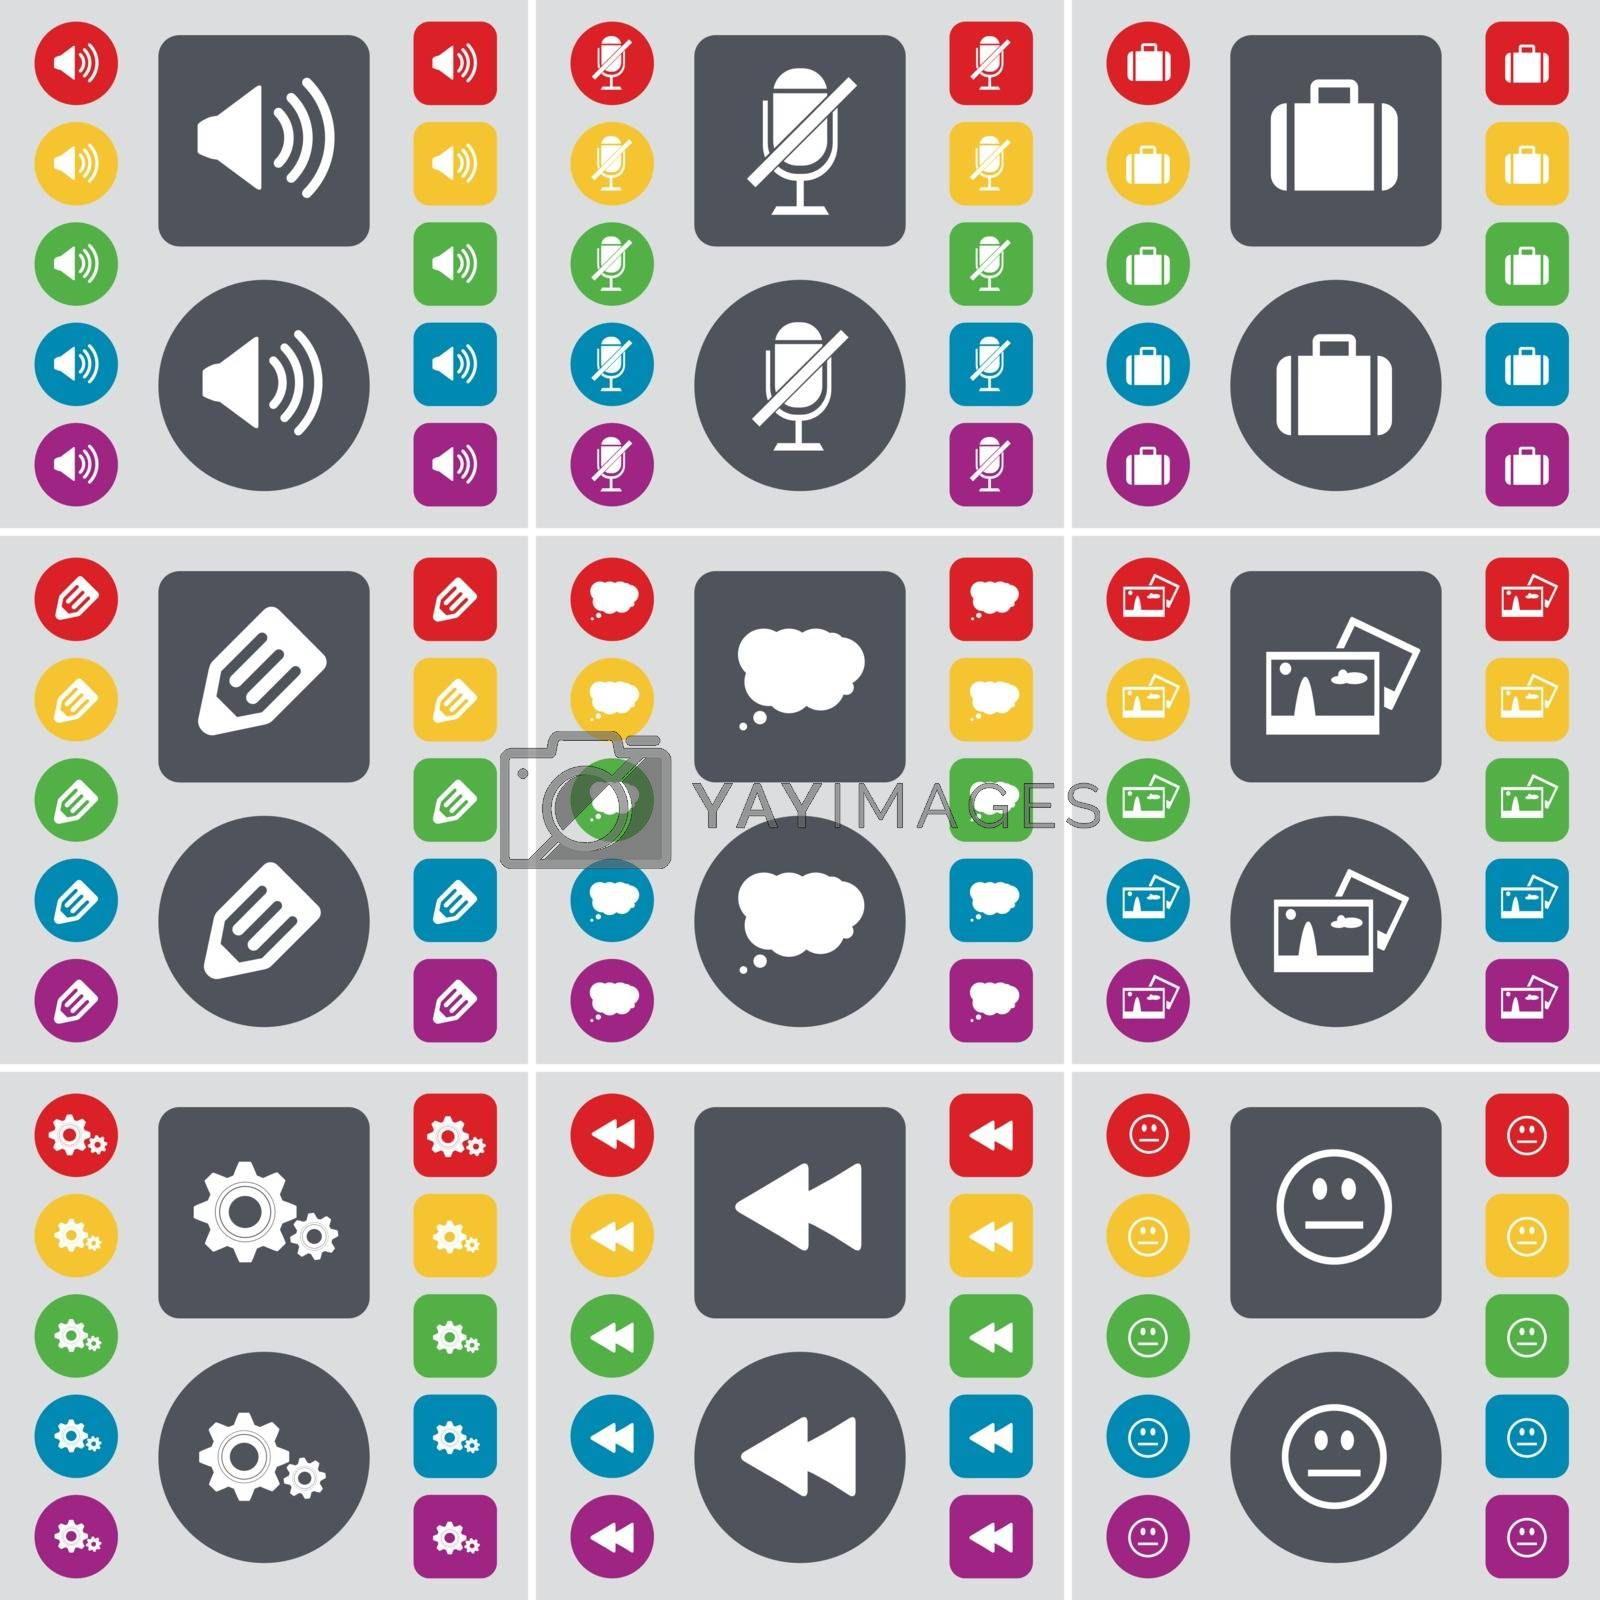 Royalty free image of Sound, Microphone, Suitcase, Pencil, Chat cloud, Picture, Gear, Rewind, Smile icon symbol. A large set of flat, colored buttons for your design. Vector by serhii_lohvyniuk